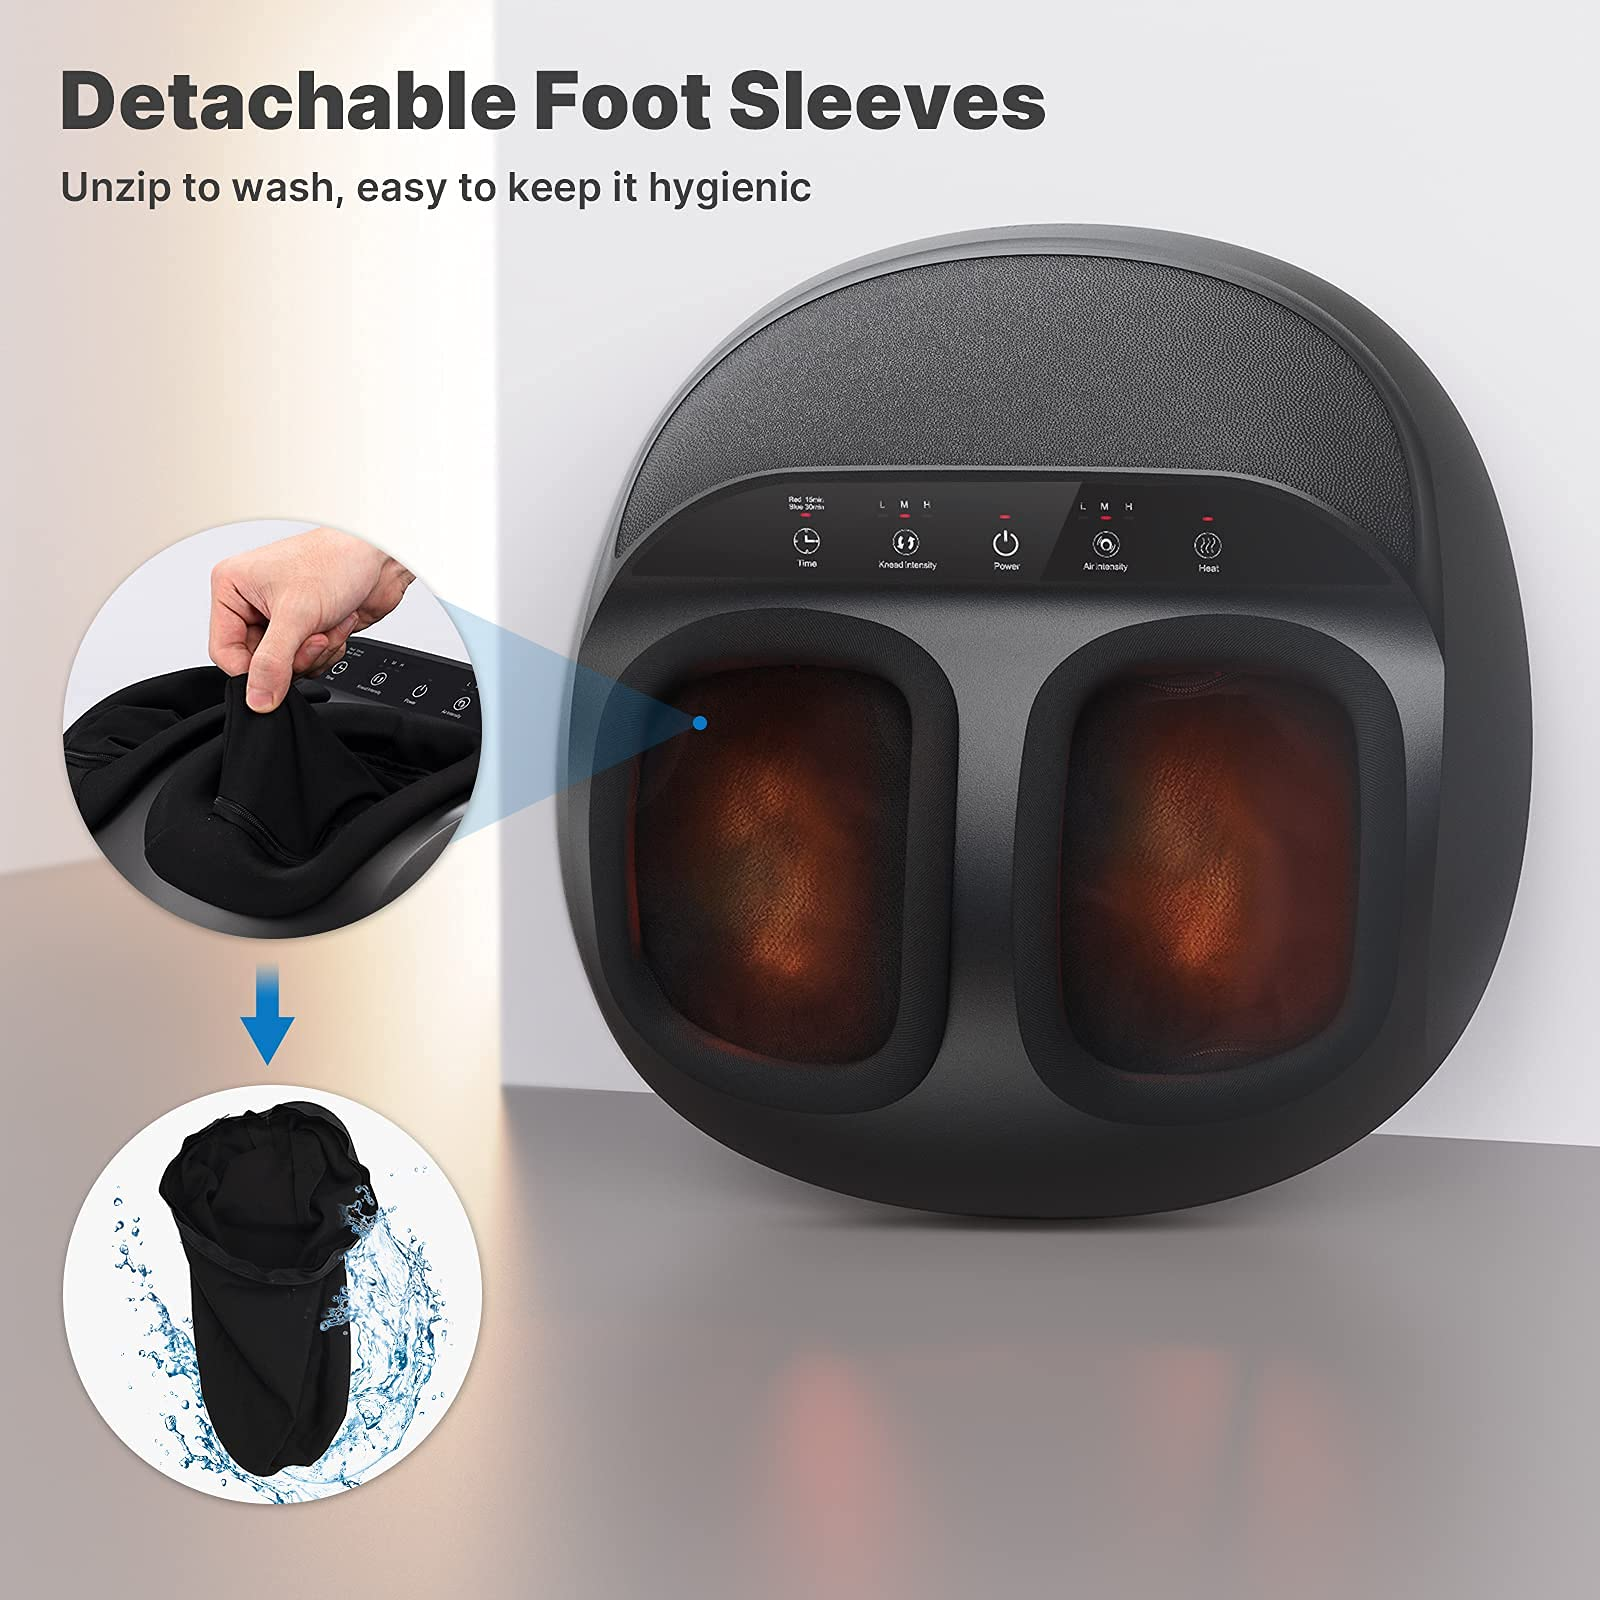 RENPHO Shiatsu Foot Massager Machine with Heat, Deep Kneading Therapy, Compression, Relieve Foot Pain from Plantar Fasciitis, Improve Circulation, Fits feet up to Men Size 12 Panel Control